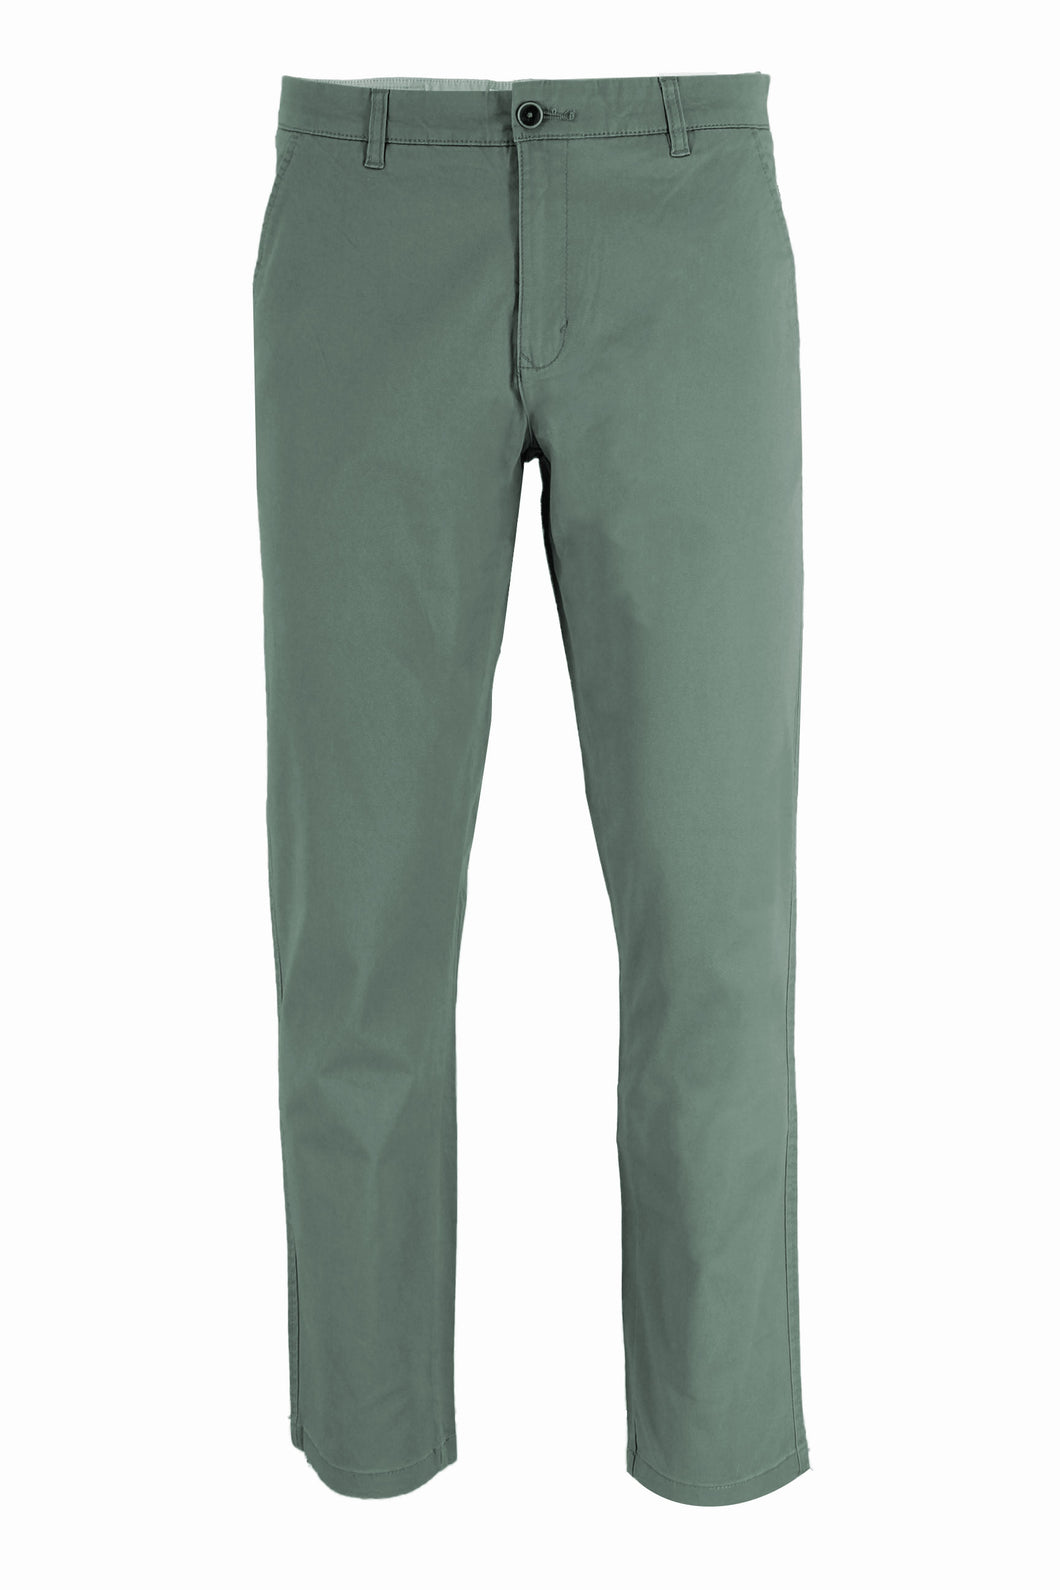 Lily Pad Ike by Ike Behar Stretch Cotton Chino Pants